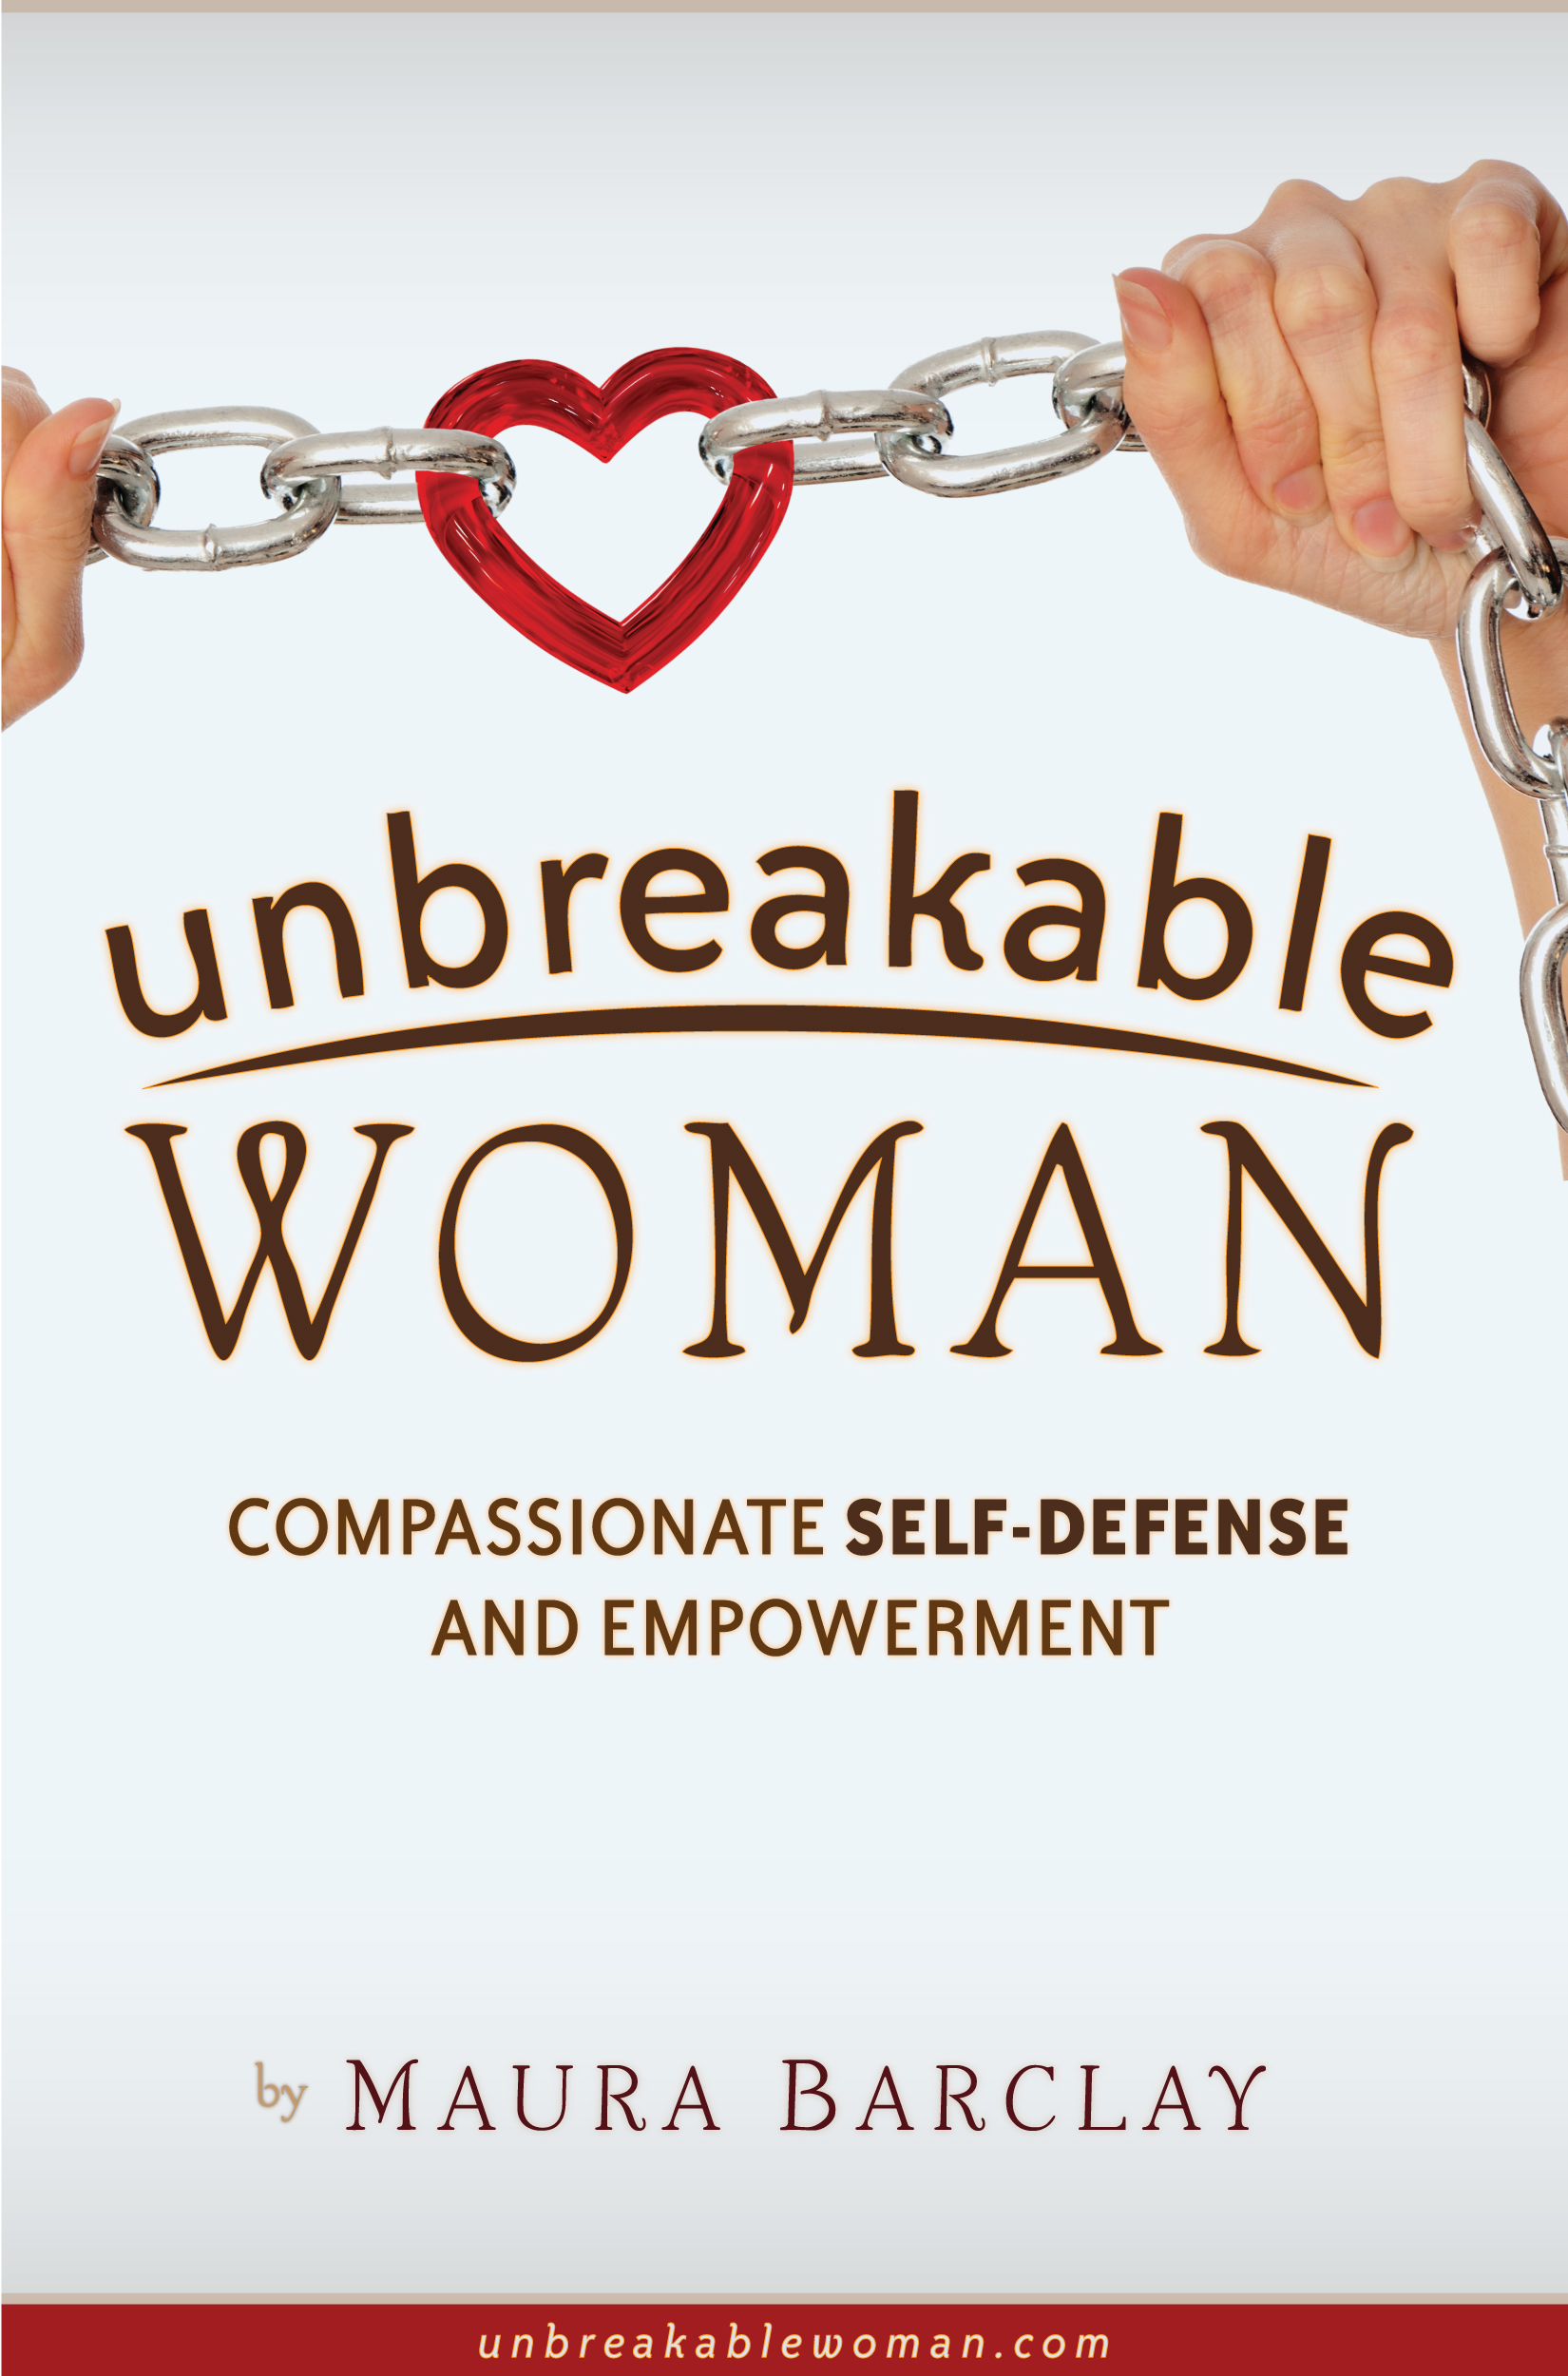 Unbreakable Woman